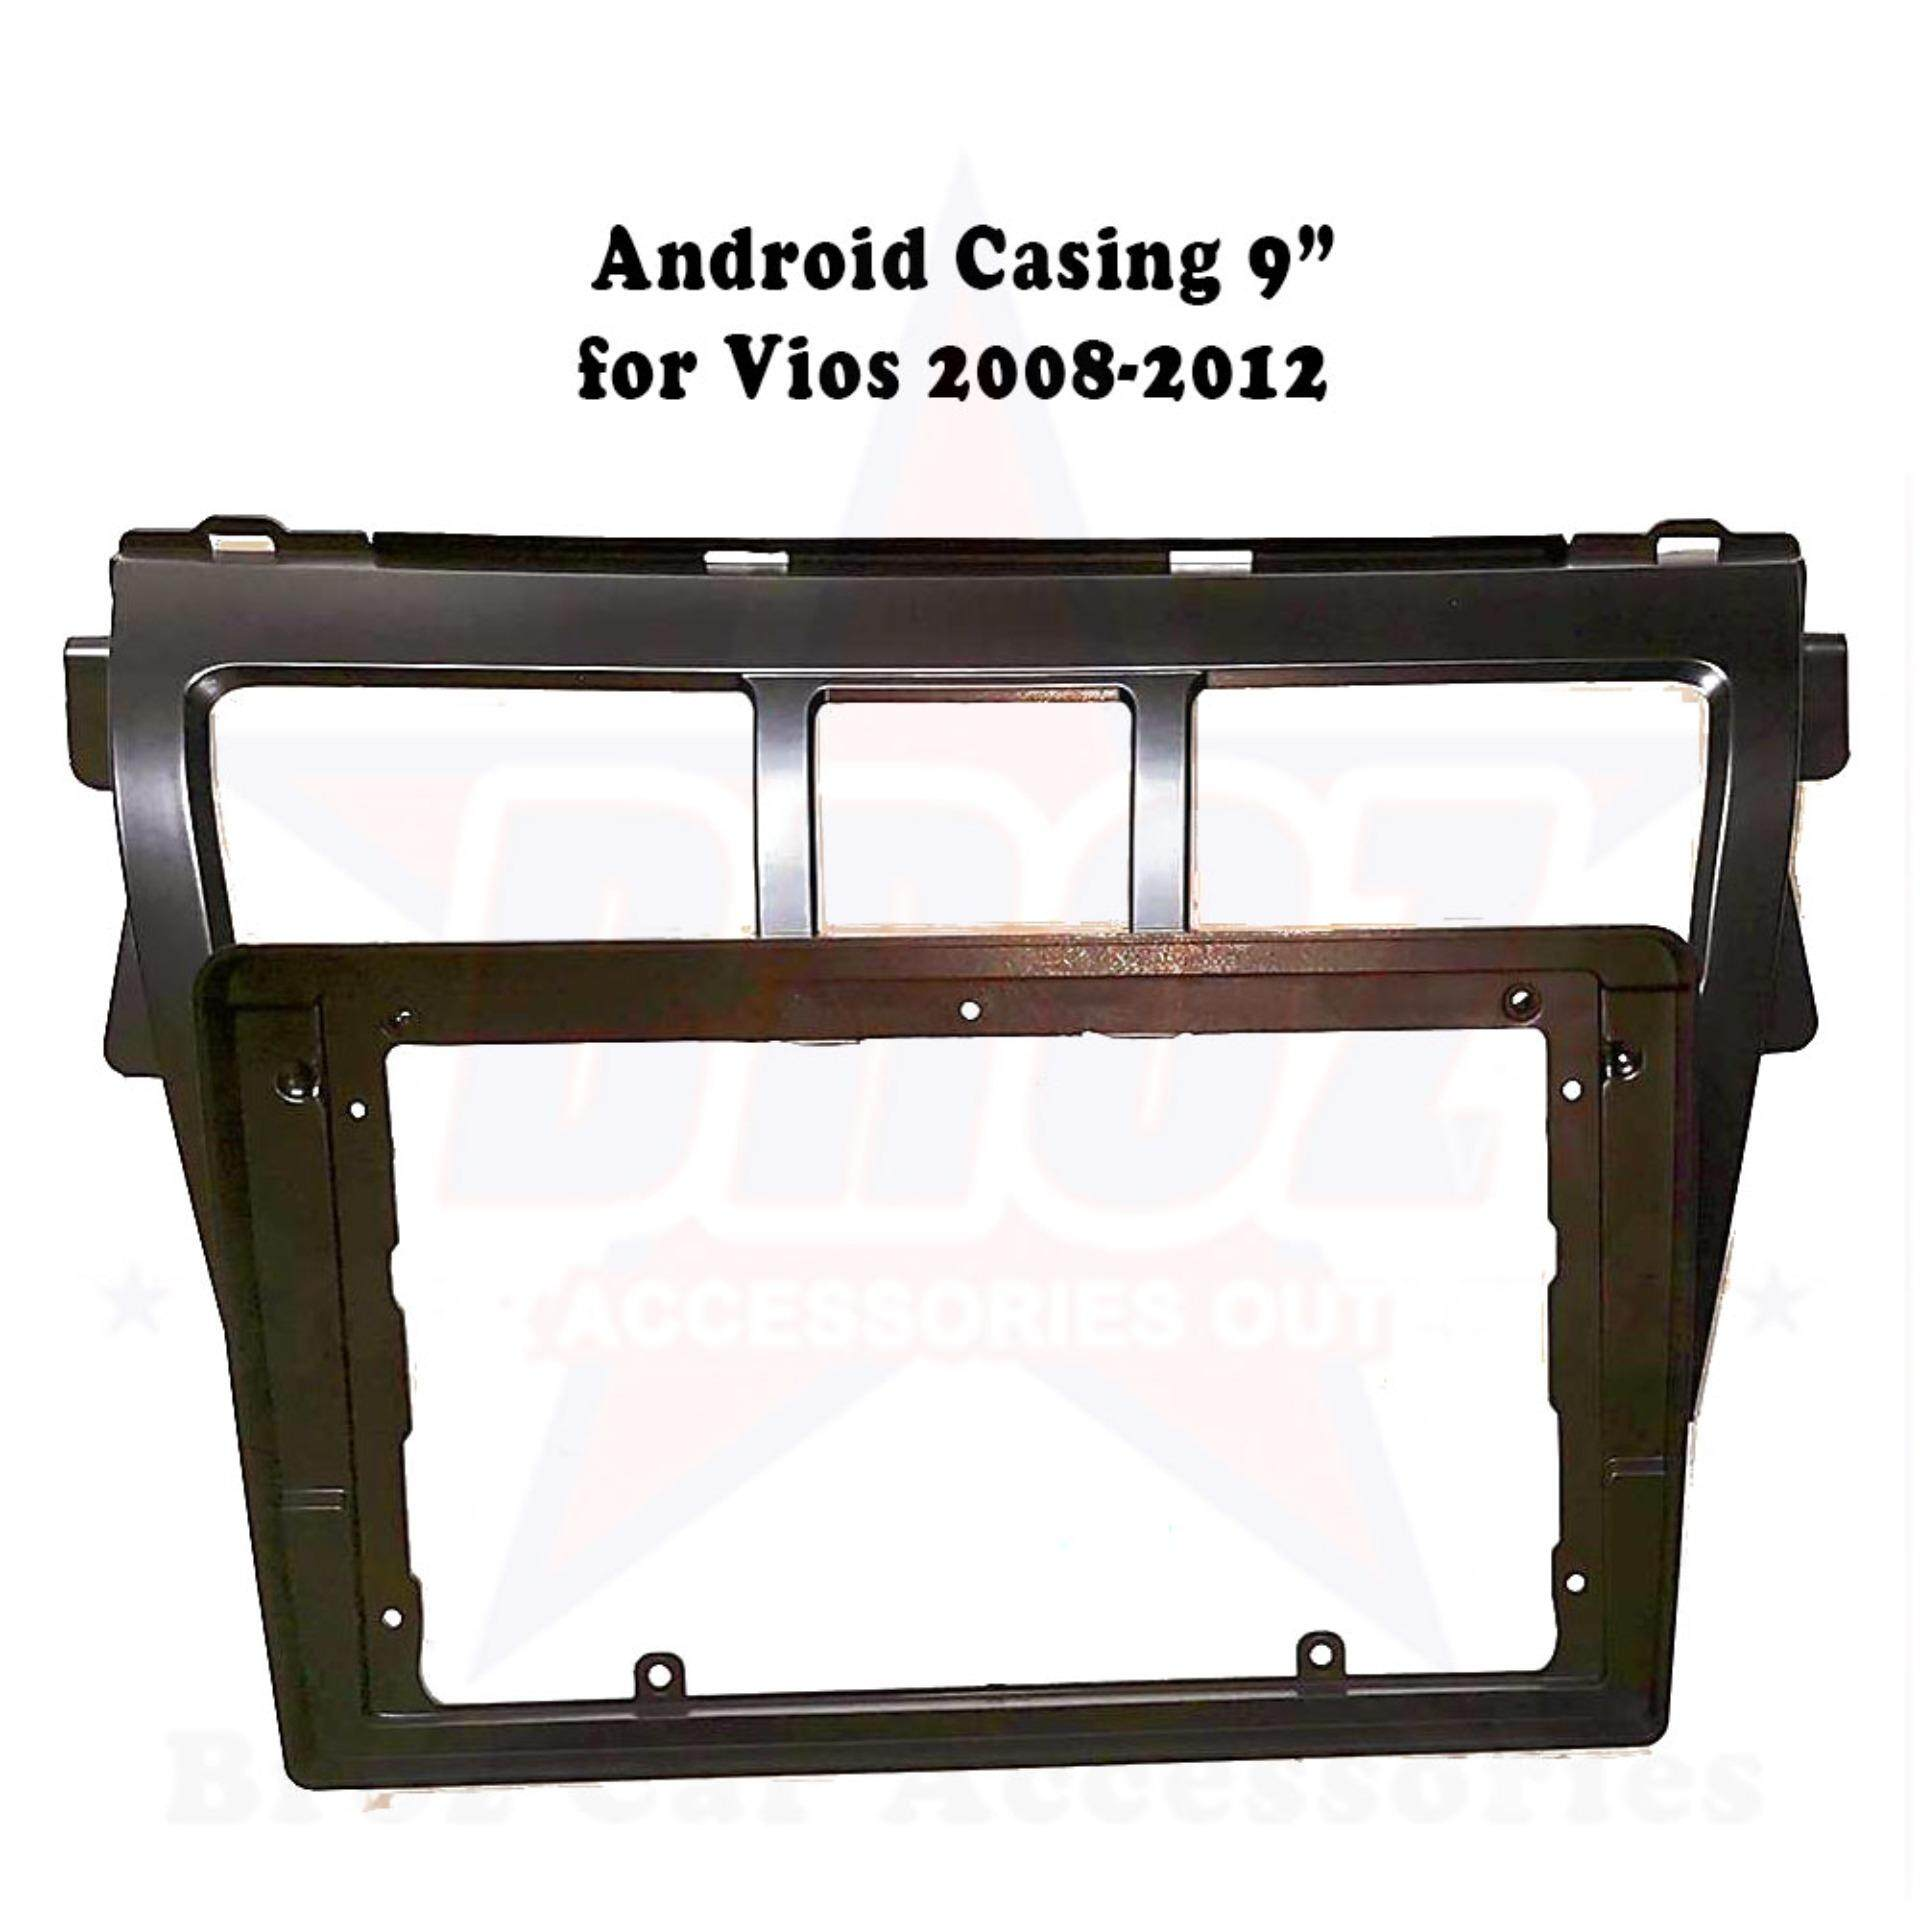 9 inches Car Android  Player Casing Vios 2008 - 2012